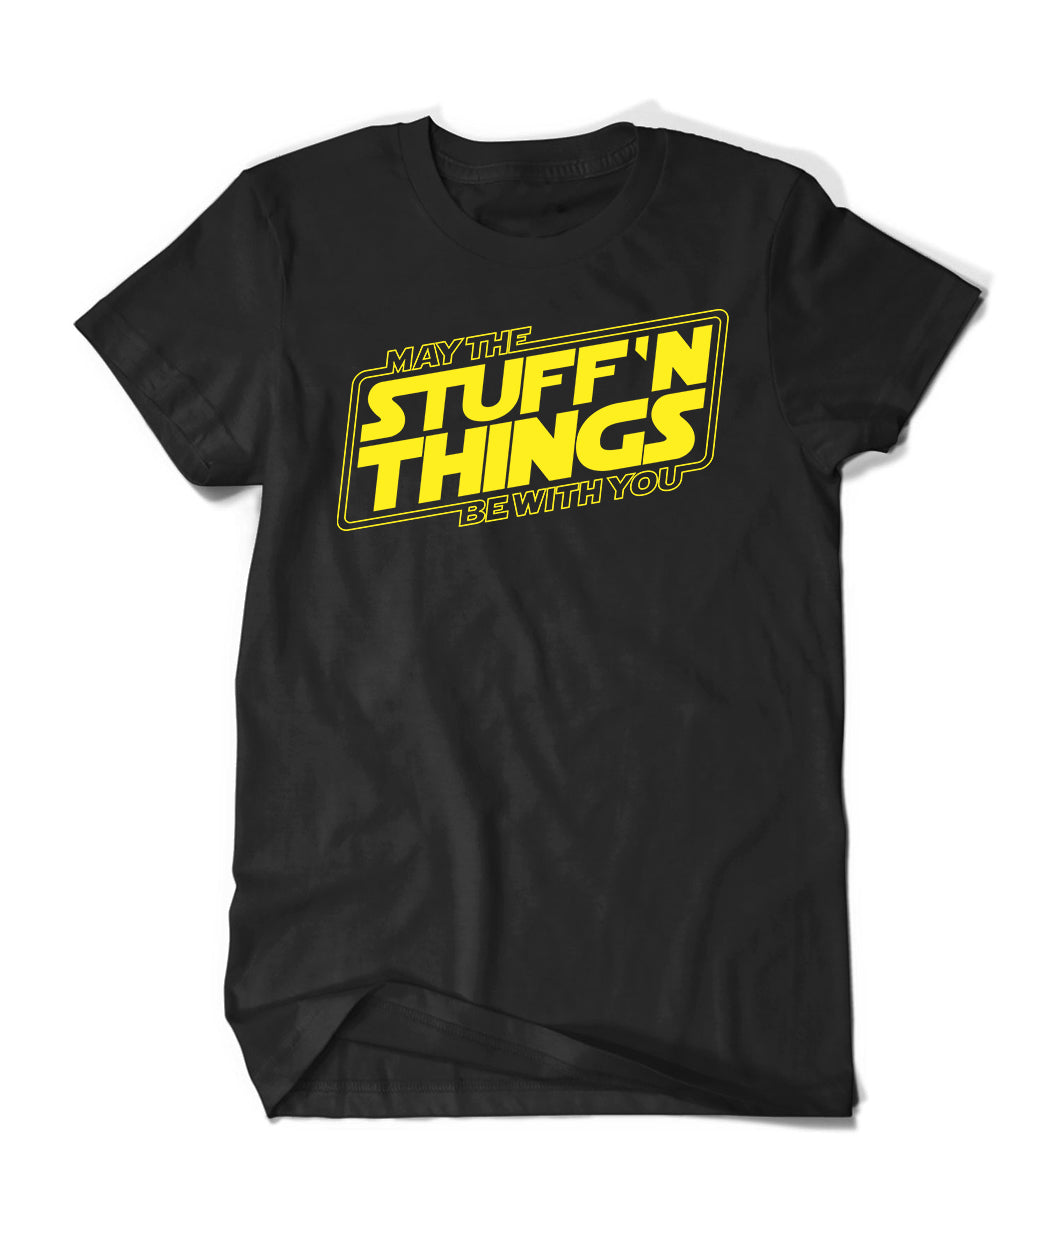 May The Stuff N Things Be With You Shirt